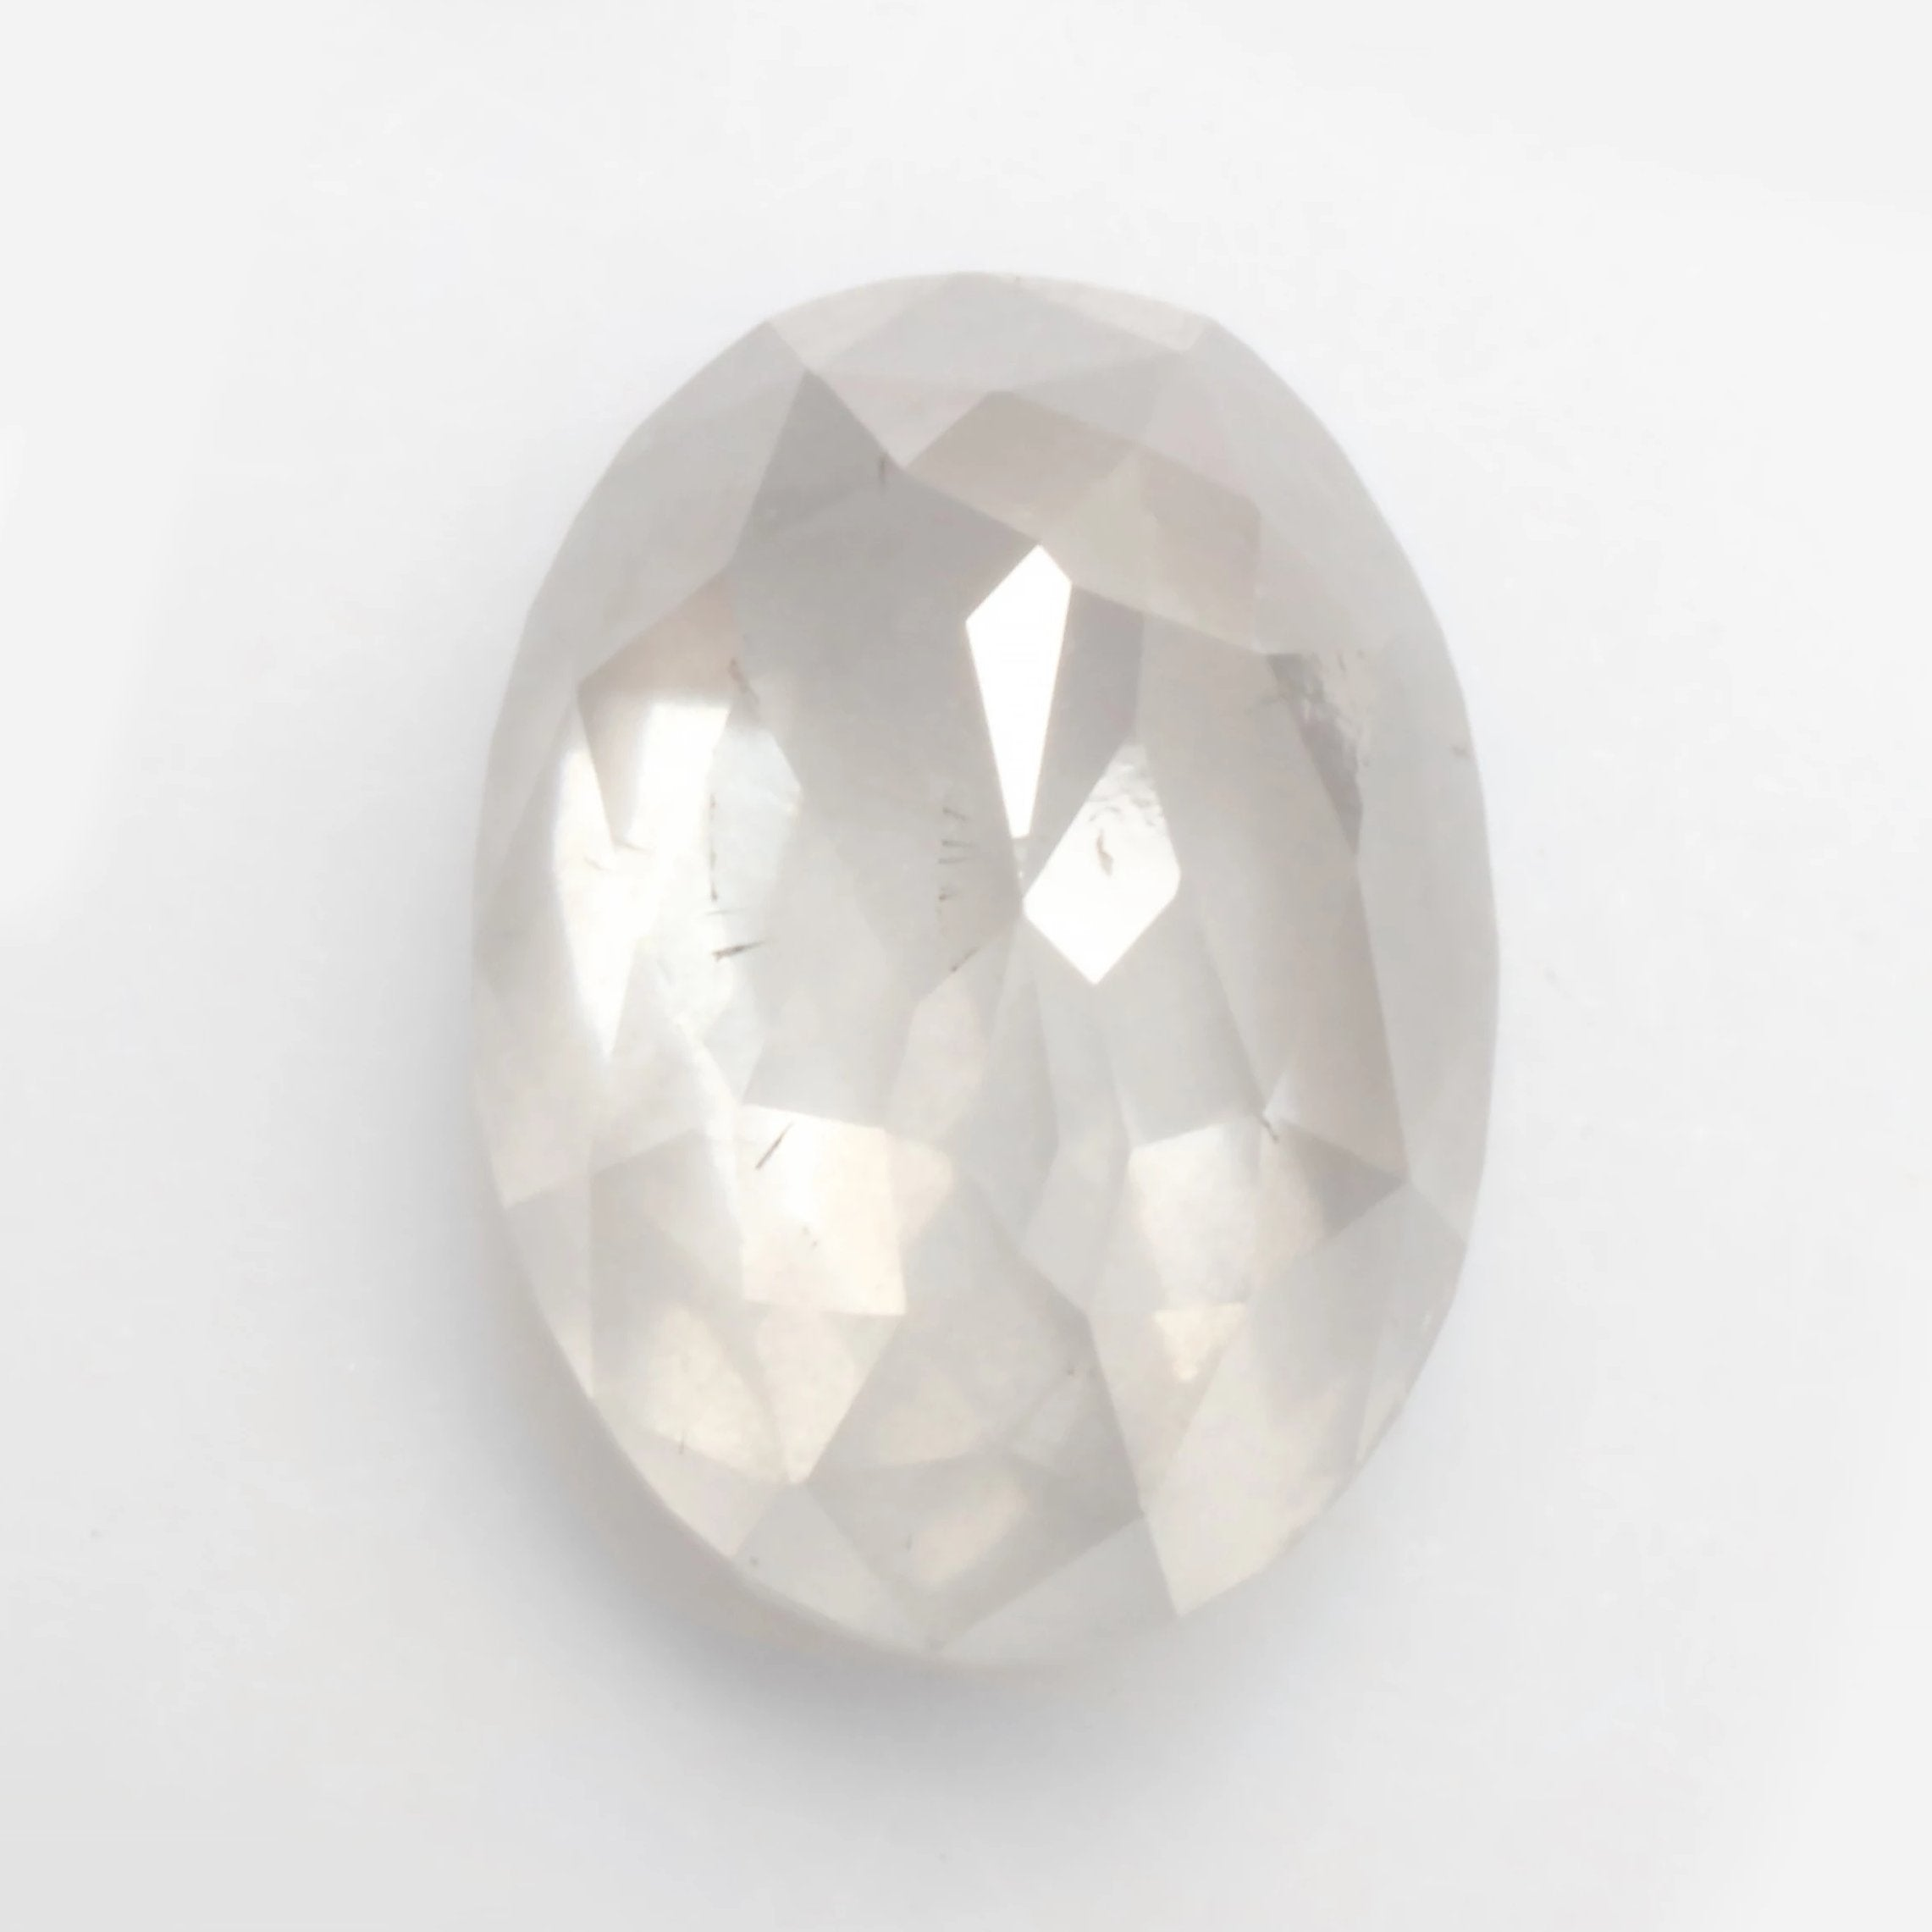 1.91ct Rose Cut Oval Celestial Diamond® for Custom Work - Inventory Code WOR191 - Celestial Diamonds ® by Midwinter Co.